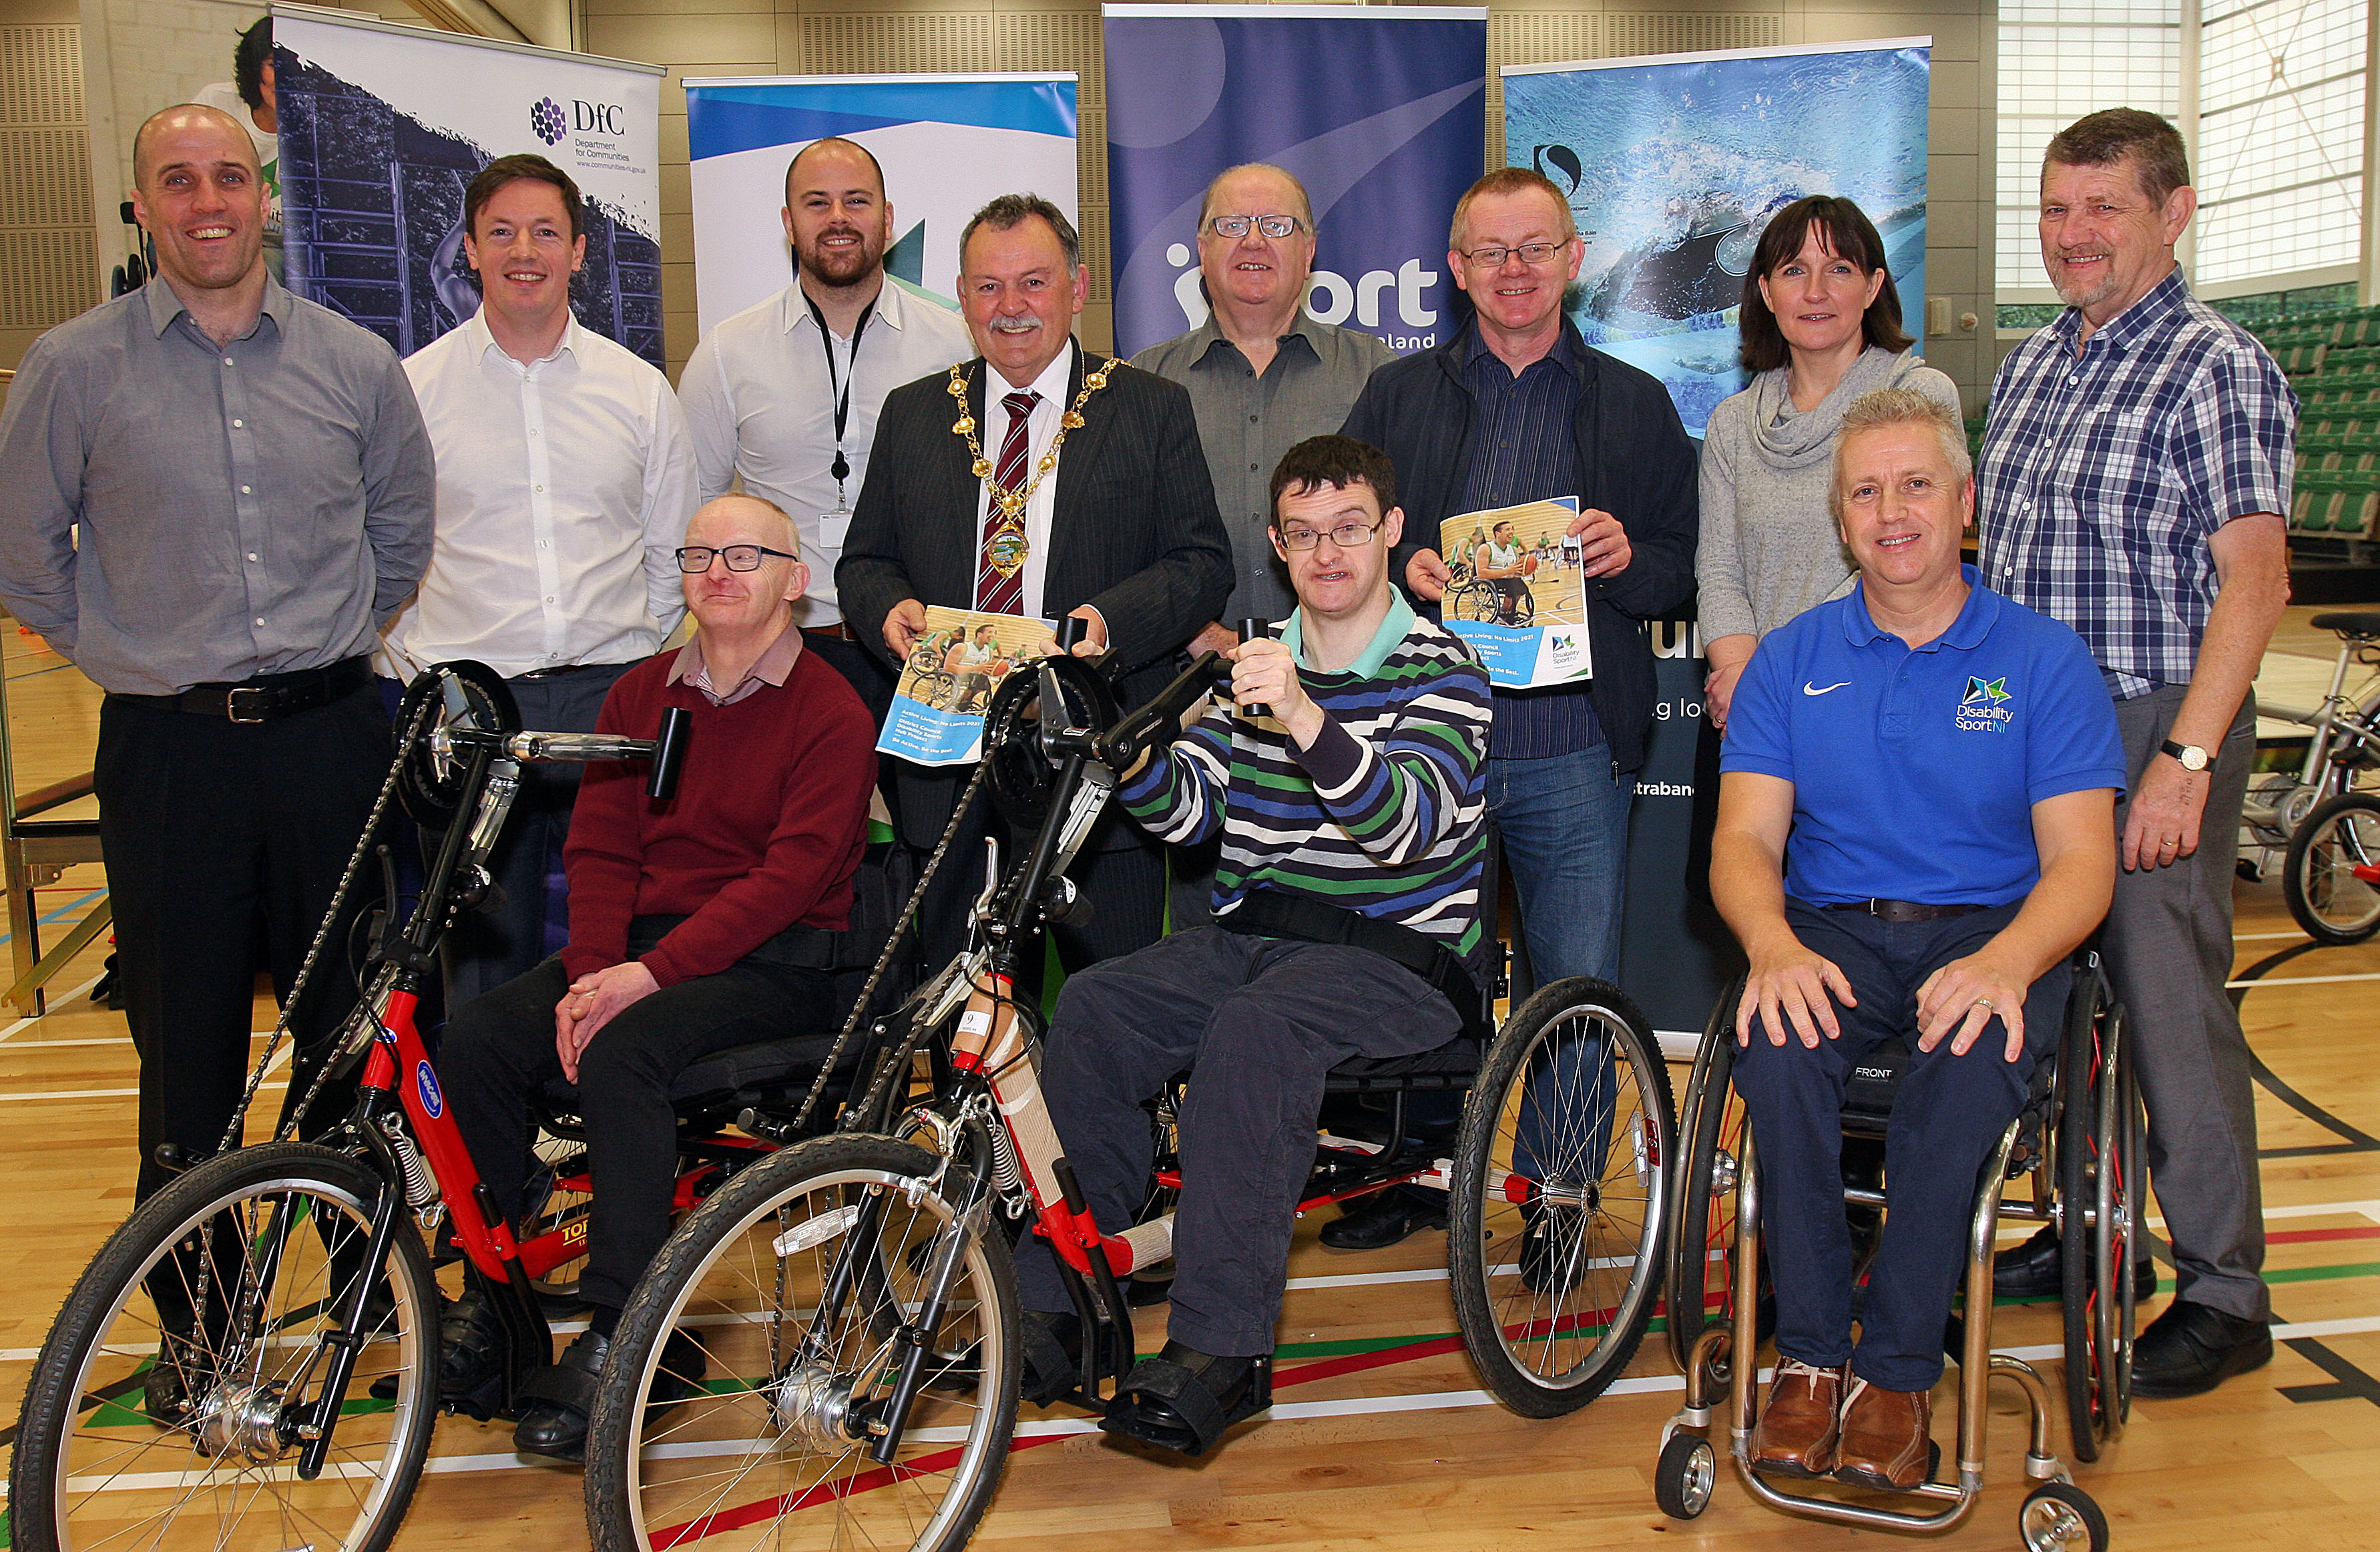 Representatives from Derry City & Strabane Council, Sport NI and Disability Sport NI alongside participants using the disability sports equipment